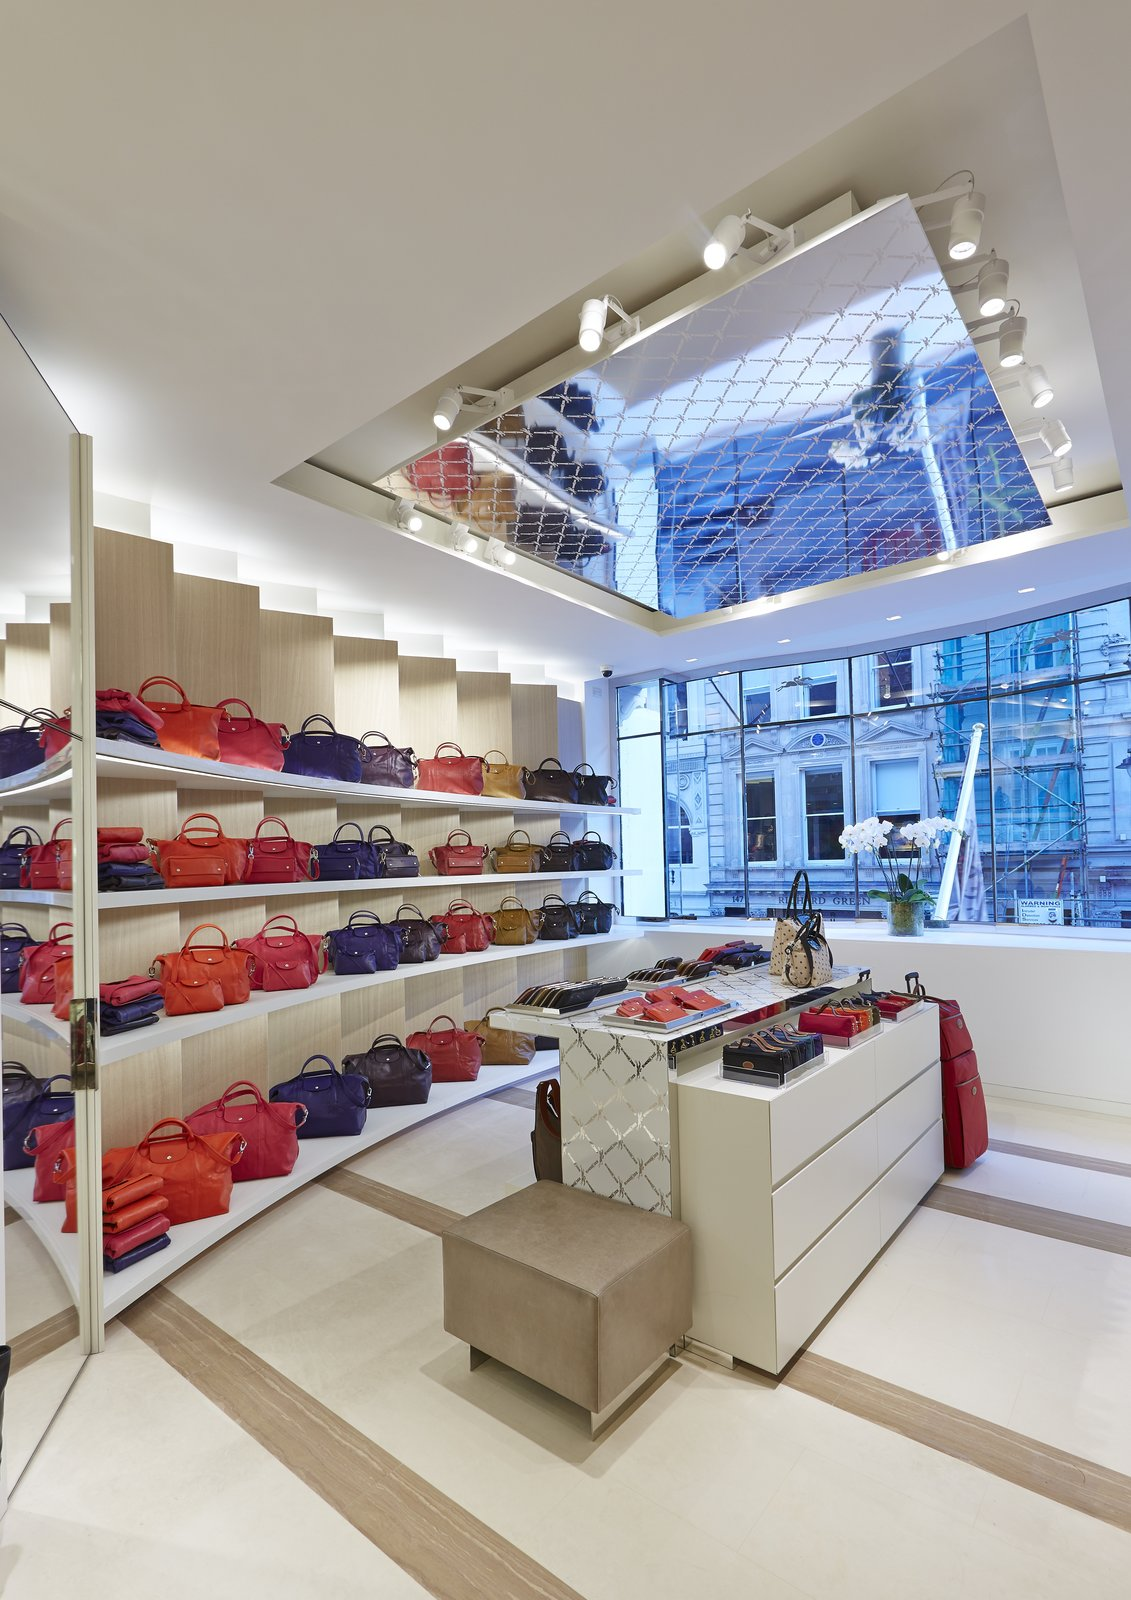 Lacing reminiscent of Longchamp's LM motif appears across ceiling tiles, wall panels, and product display stands, tying the space together.  Photo 5 of 5 in Mural Artist Sets the Scene at Longchamp's Flagship Store in London